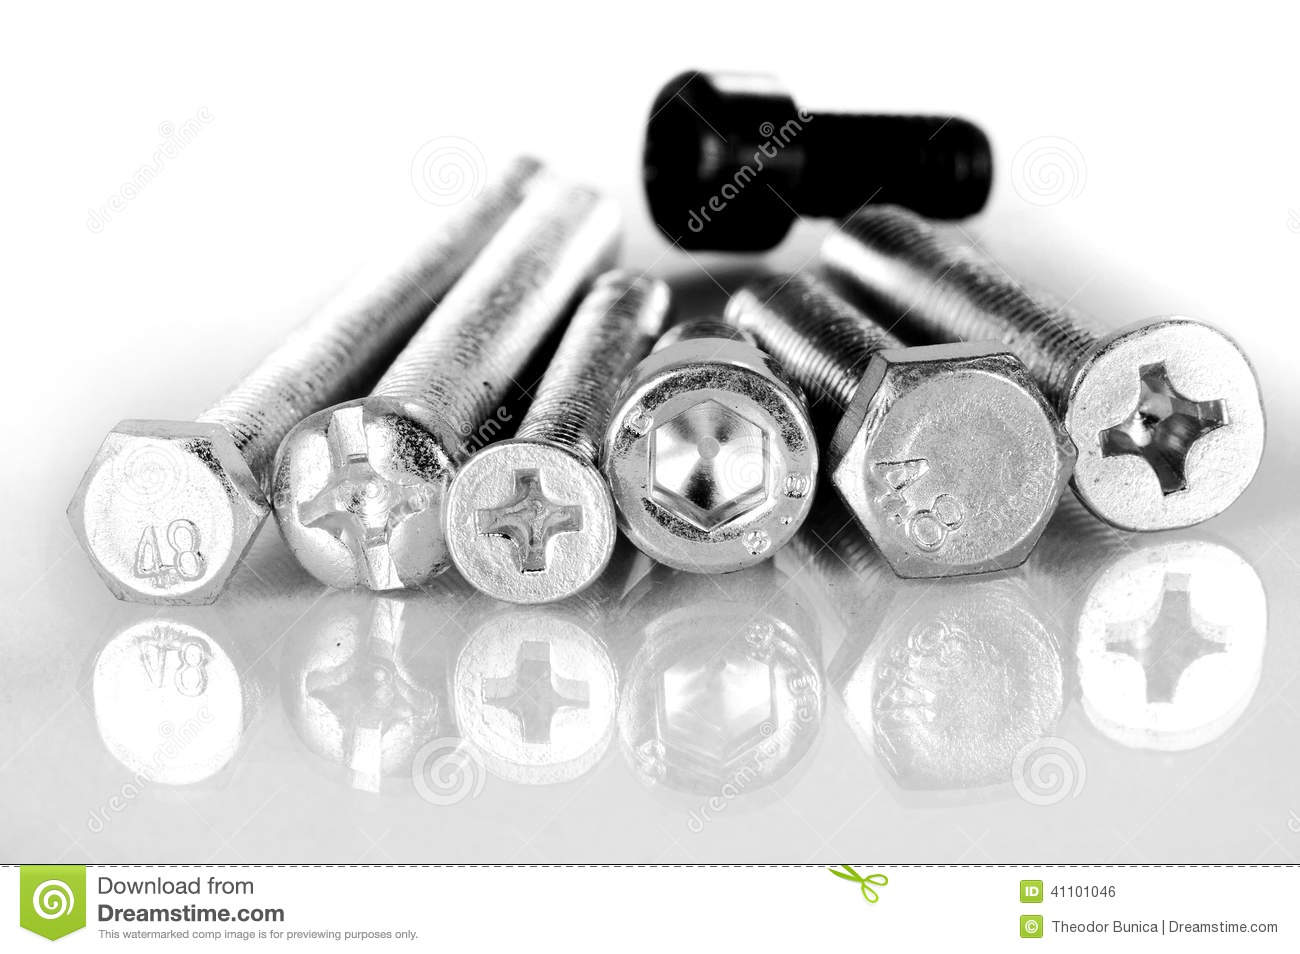 Different types of heads stock photo  Image of screws - 41101046